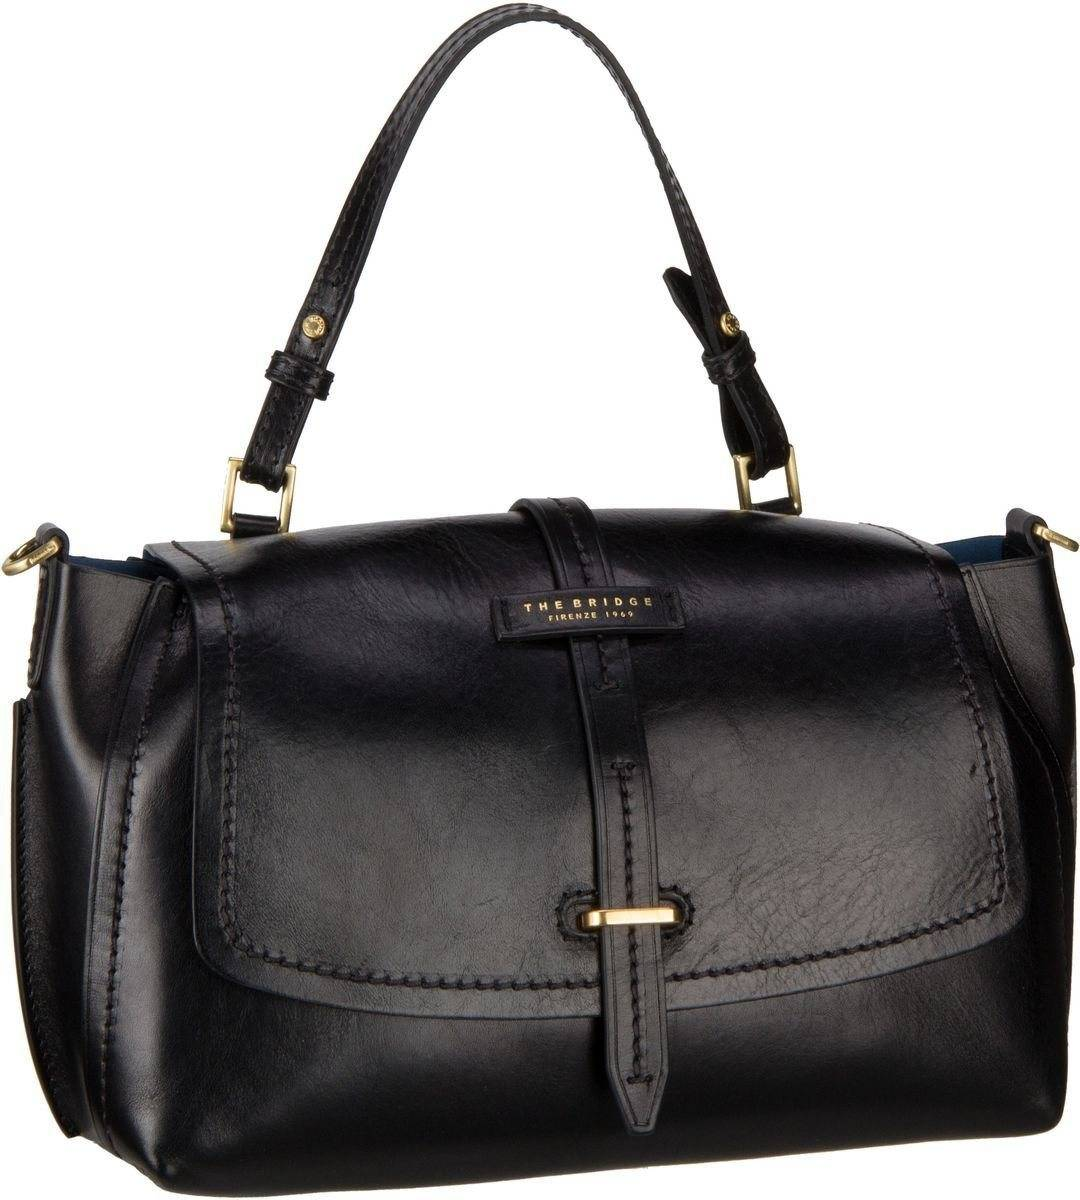 THE BRIDGE Handtasche »Florentin Damentasche 3407«, Nero/Oro Vintage